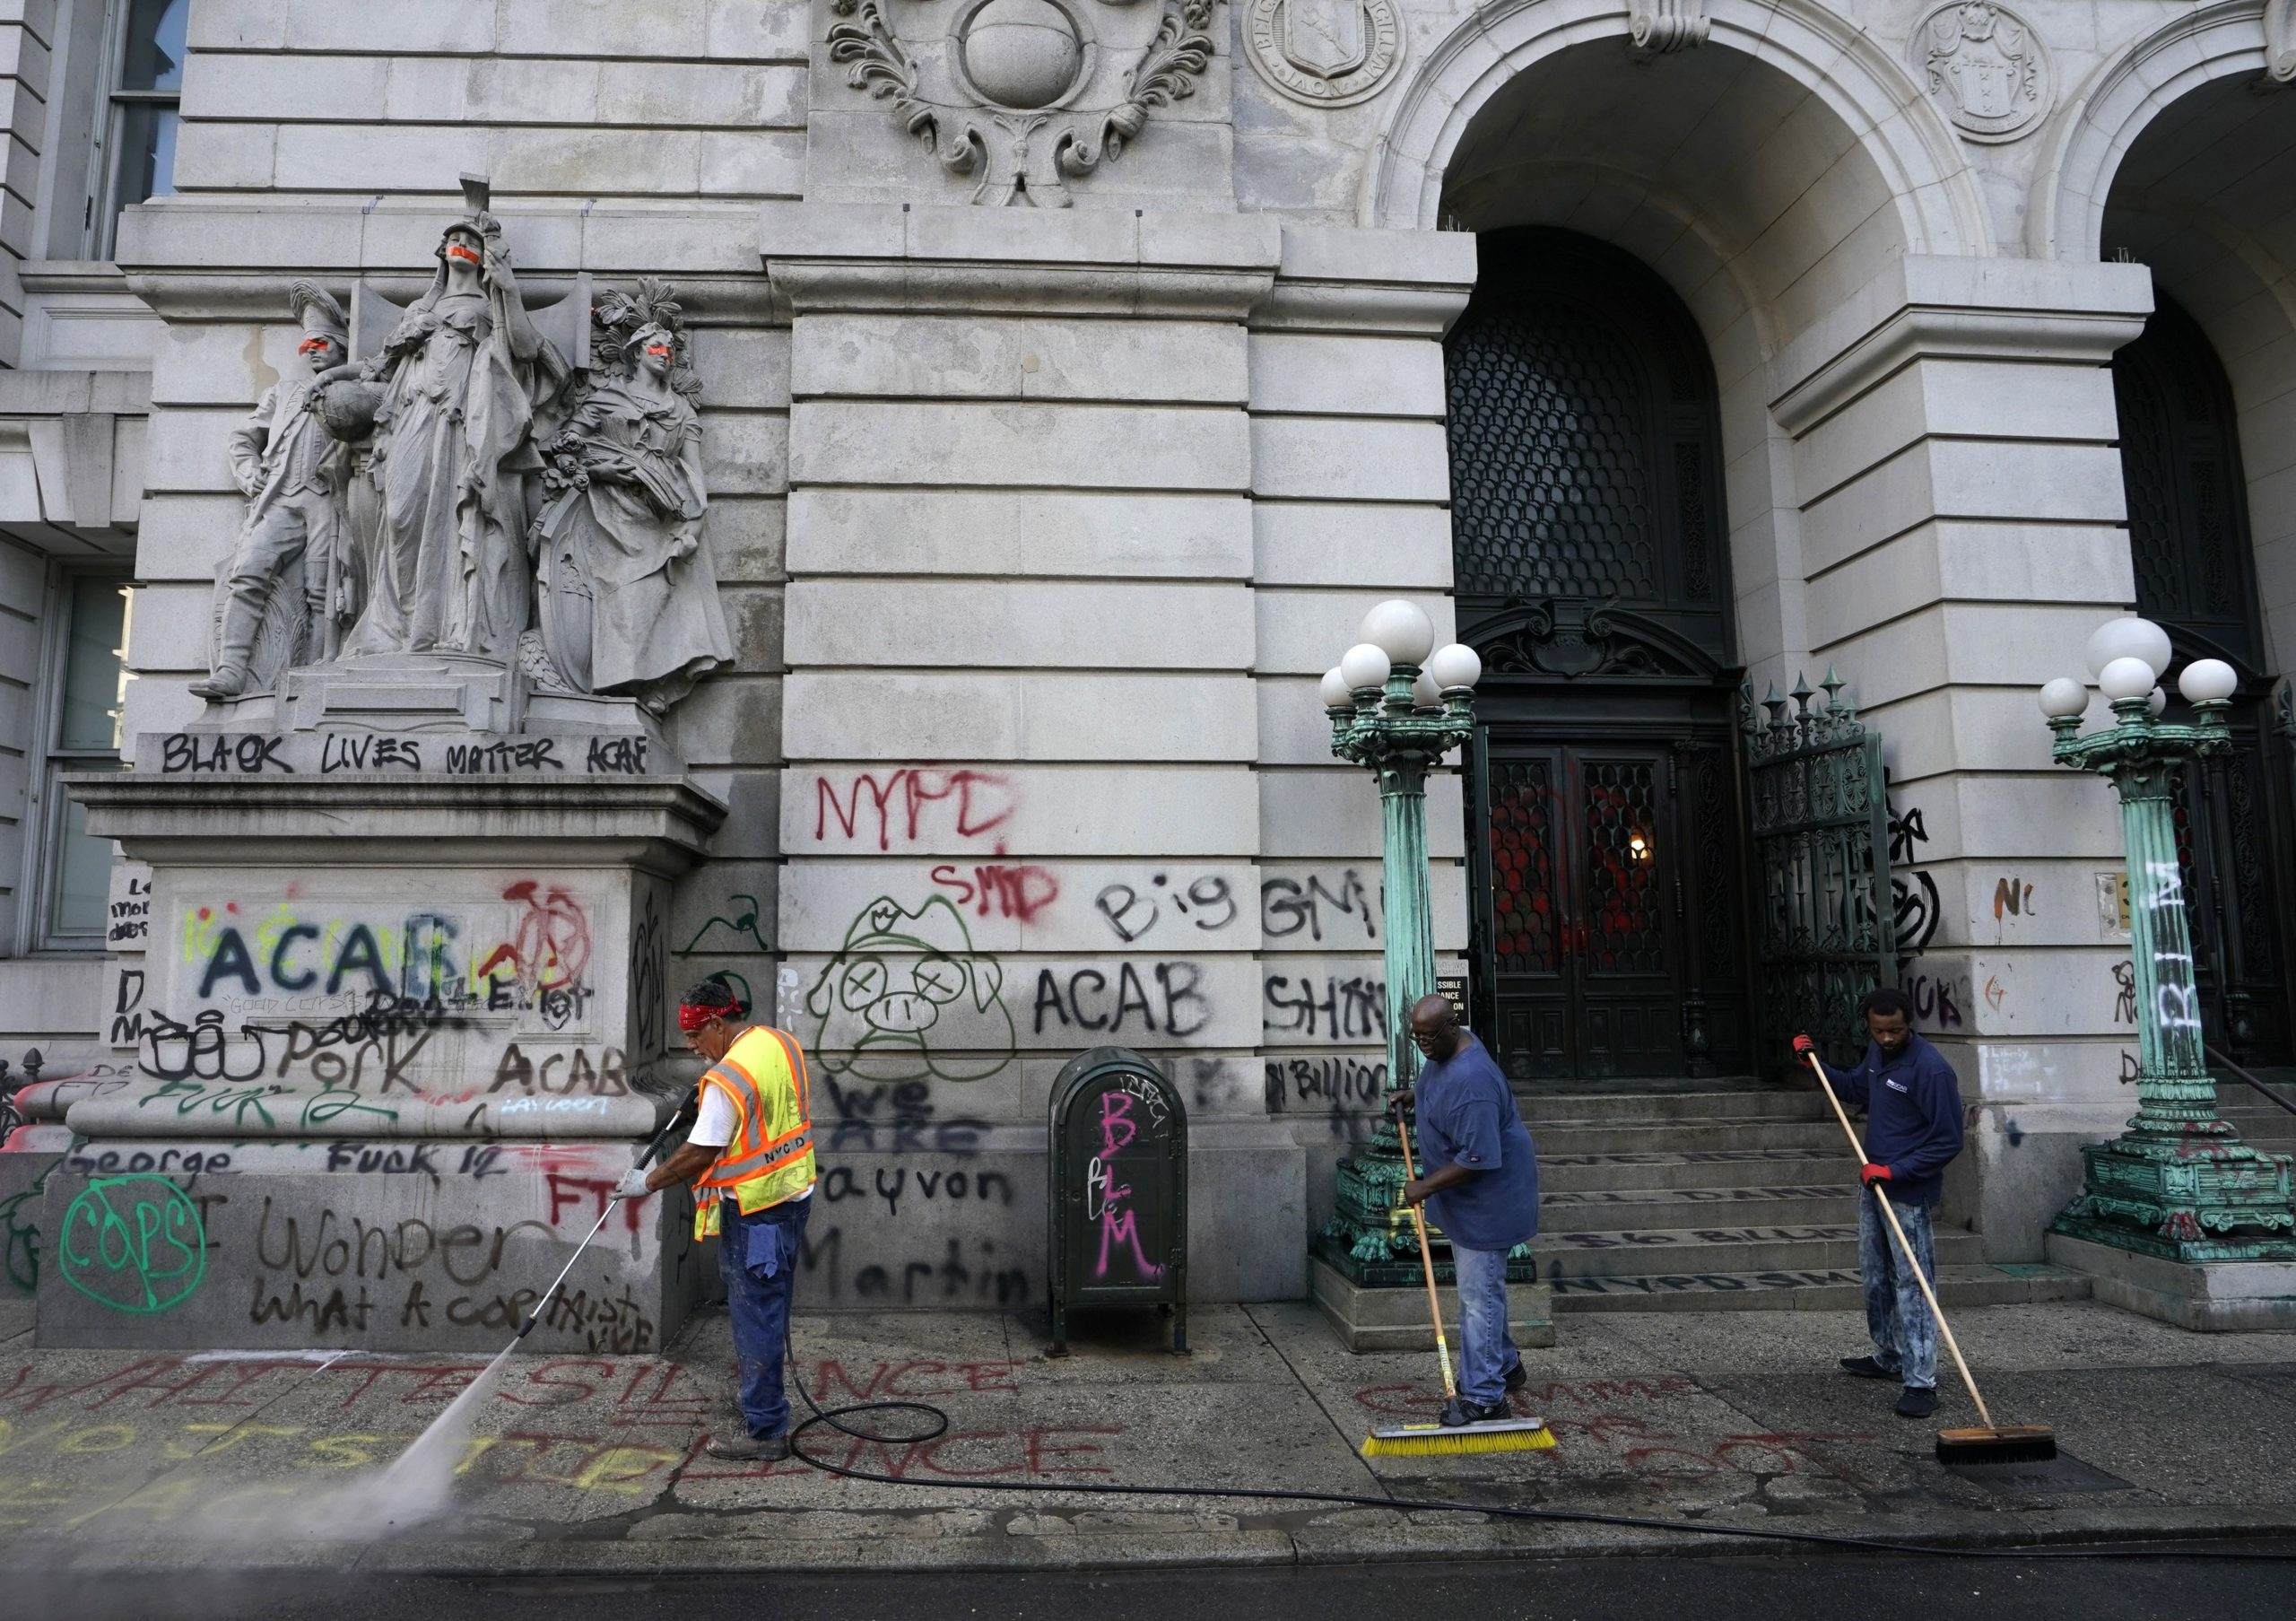 Sanitation workers clean up graffiti on July 22, 2020, after the Occupy City Hall protesters were cleared overnight by police - New York police removed the remaining Occupy City Hall protesters out of a month-long encampment. The protesters demanded a cut of at least $1 billion from the NYPD budget. The City Council approved the reform and Mayor Bill de Blasio signed into law. (Photo by TIMOTHY A. CLARY / AFP) (Photo by TIMOTHY A. CLARY/AFP via Getty Images)